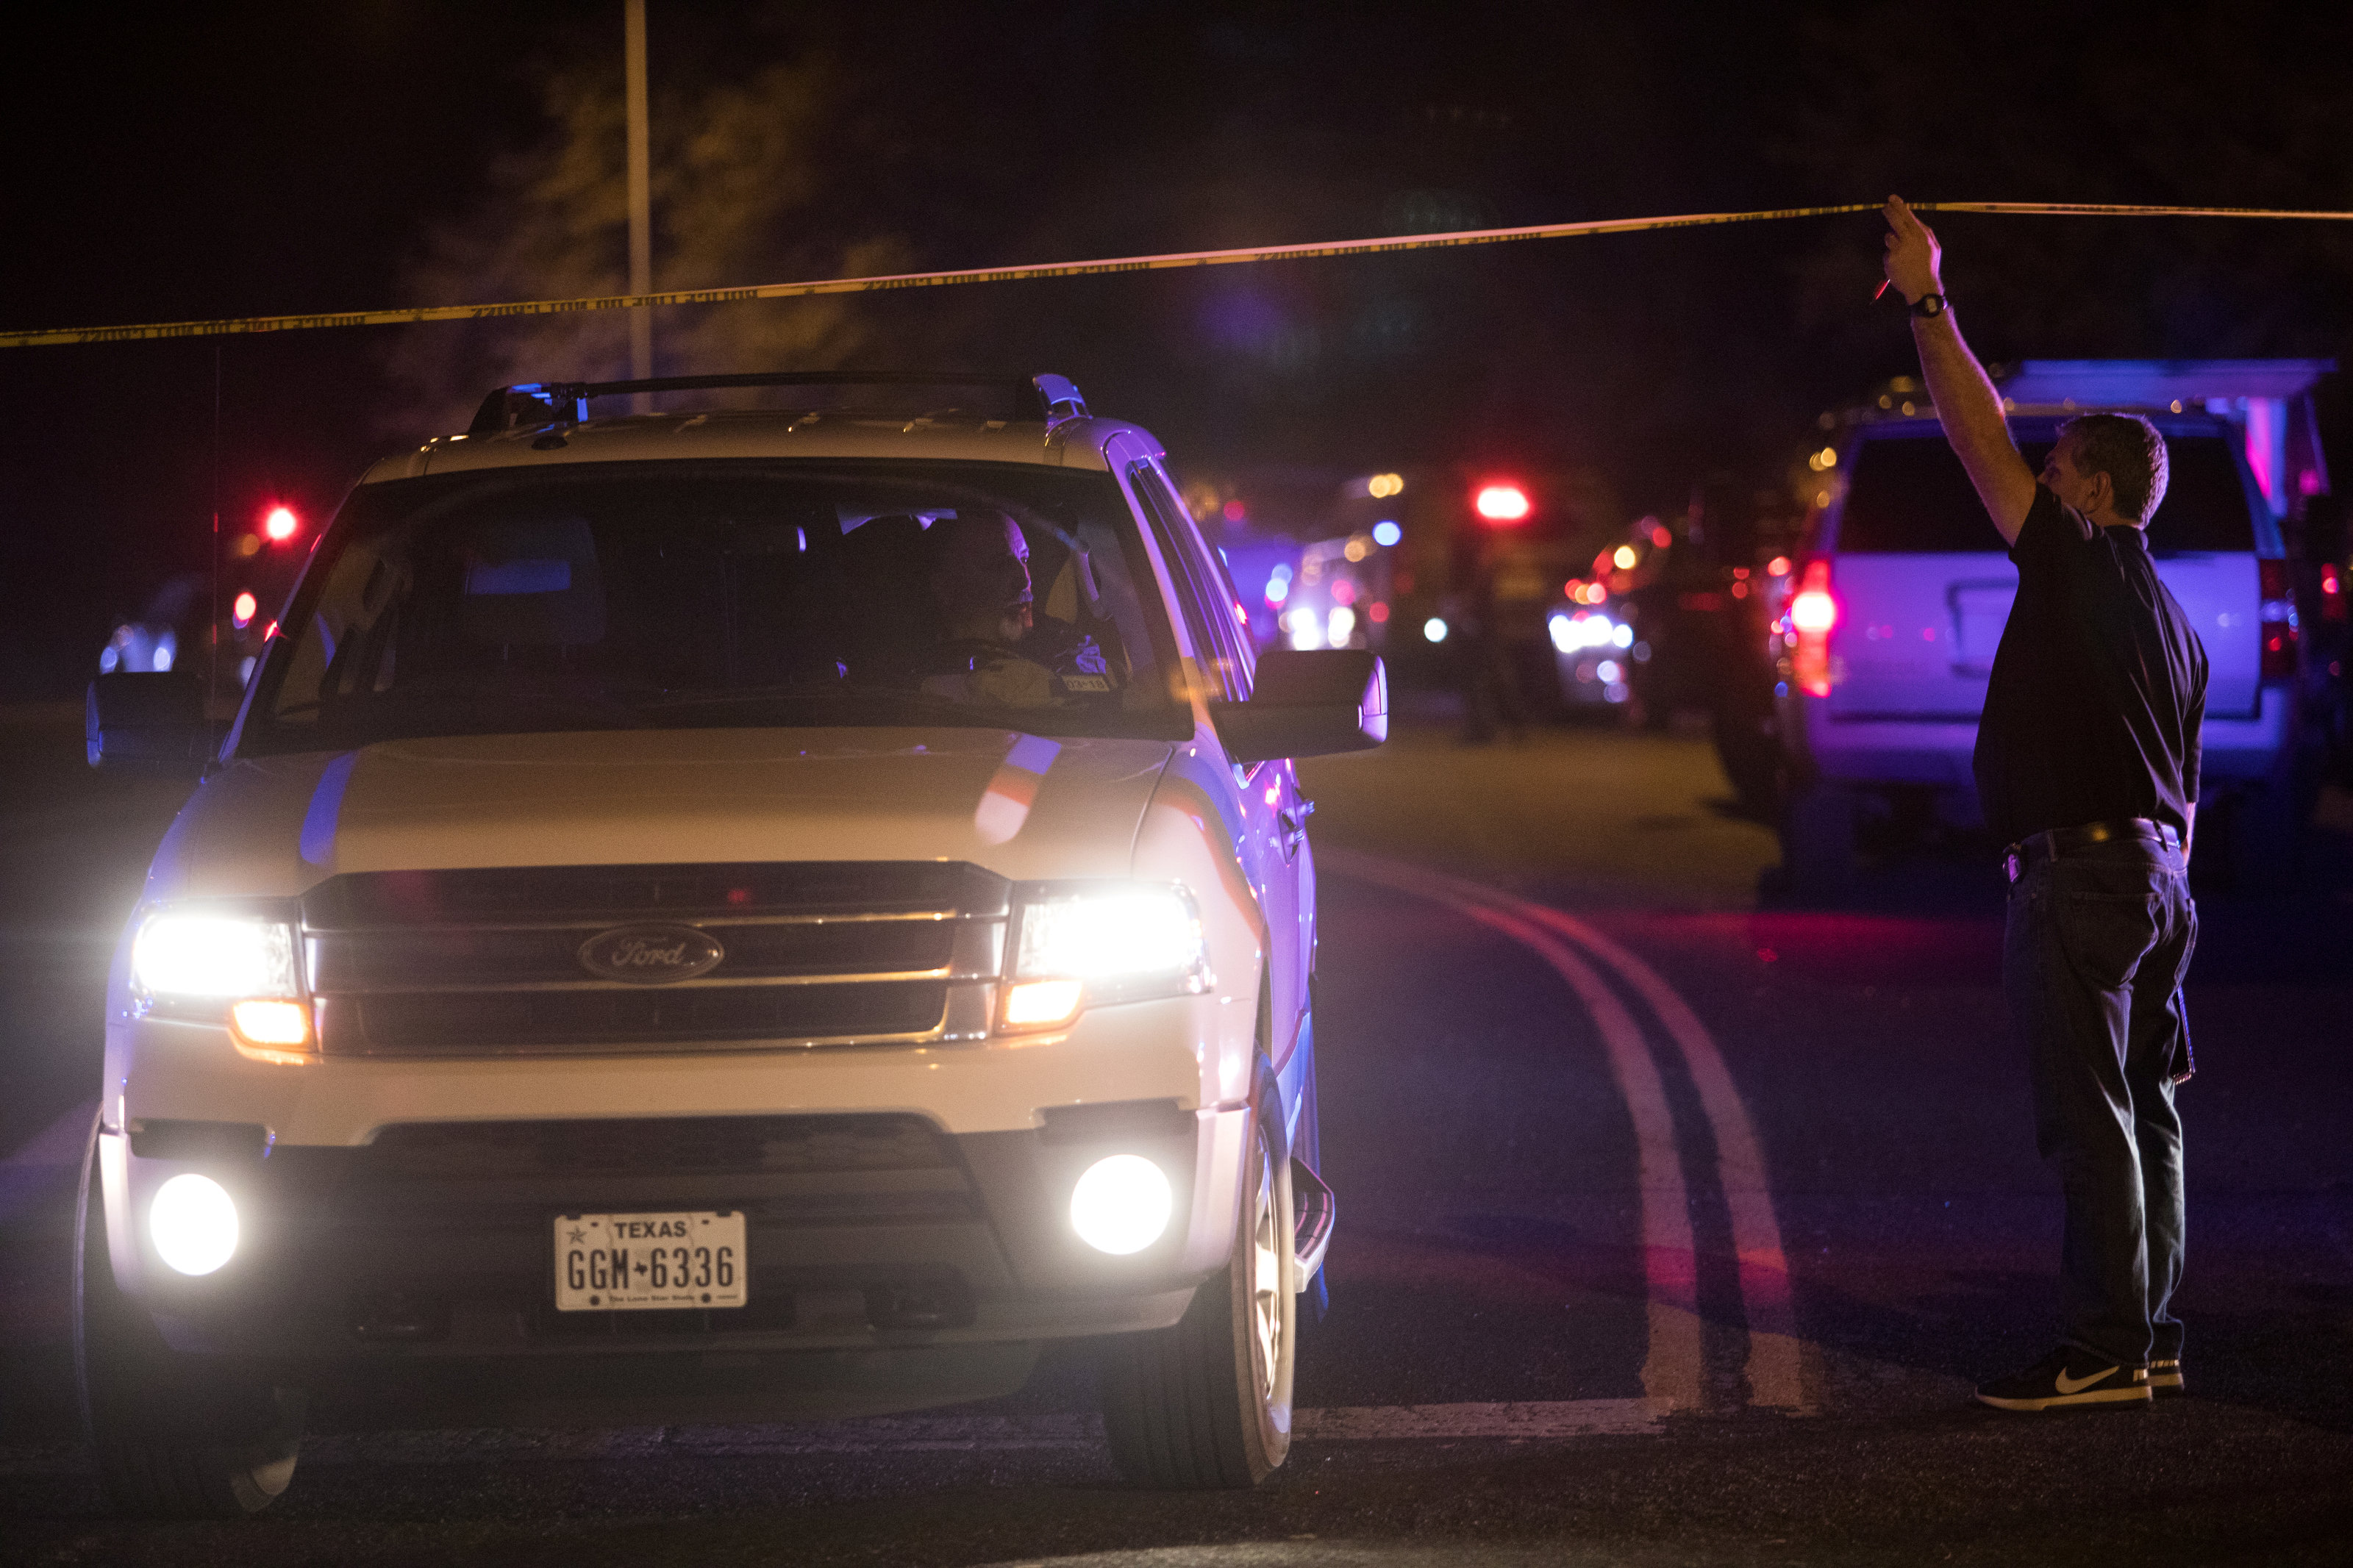 Trip wire may have set off bomb in Austin: Police